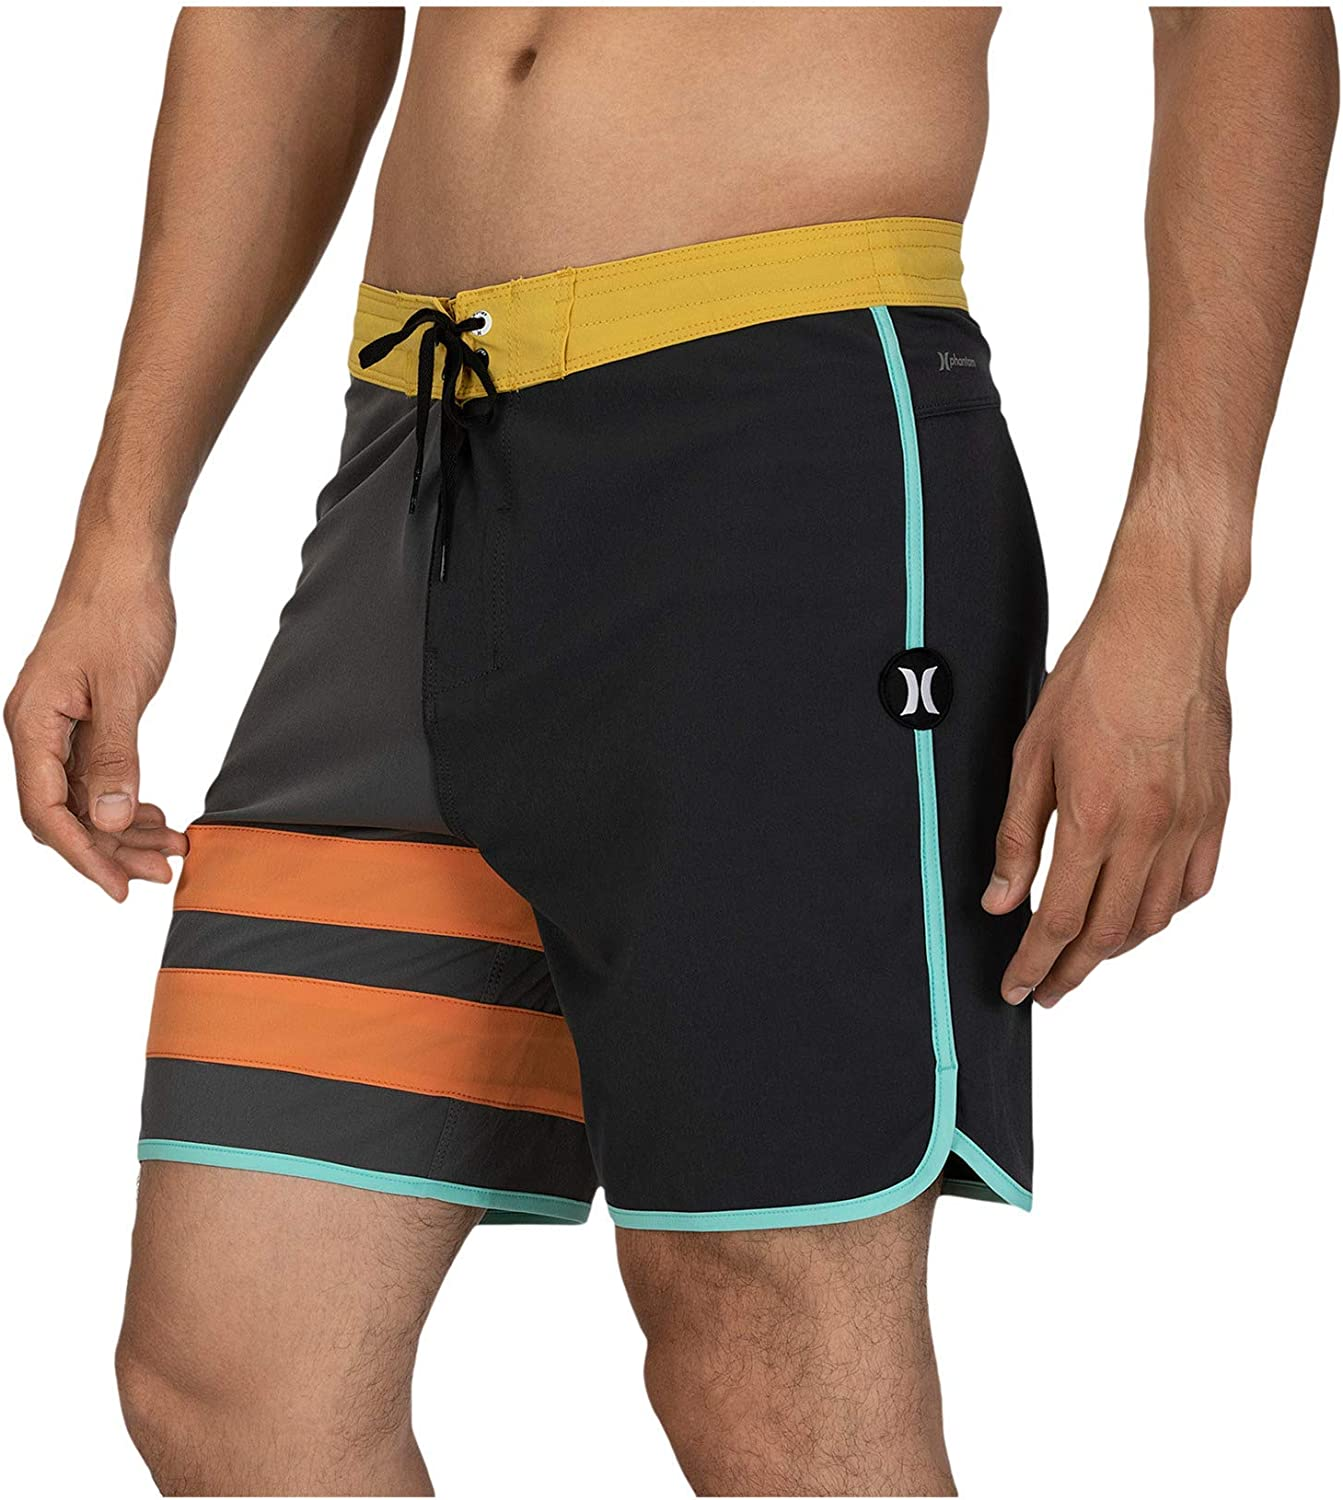 Hurley Outlet sale feature Men's Phantom Block Party New product!! Short Boardshort Inch Swim 18